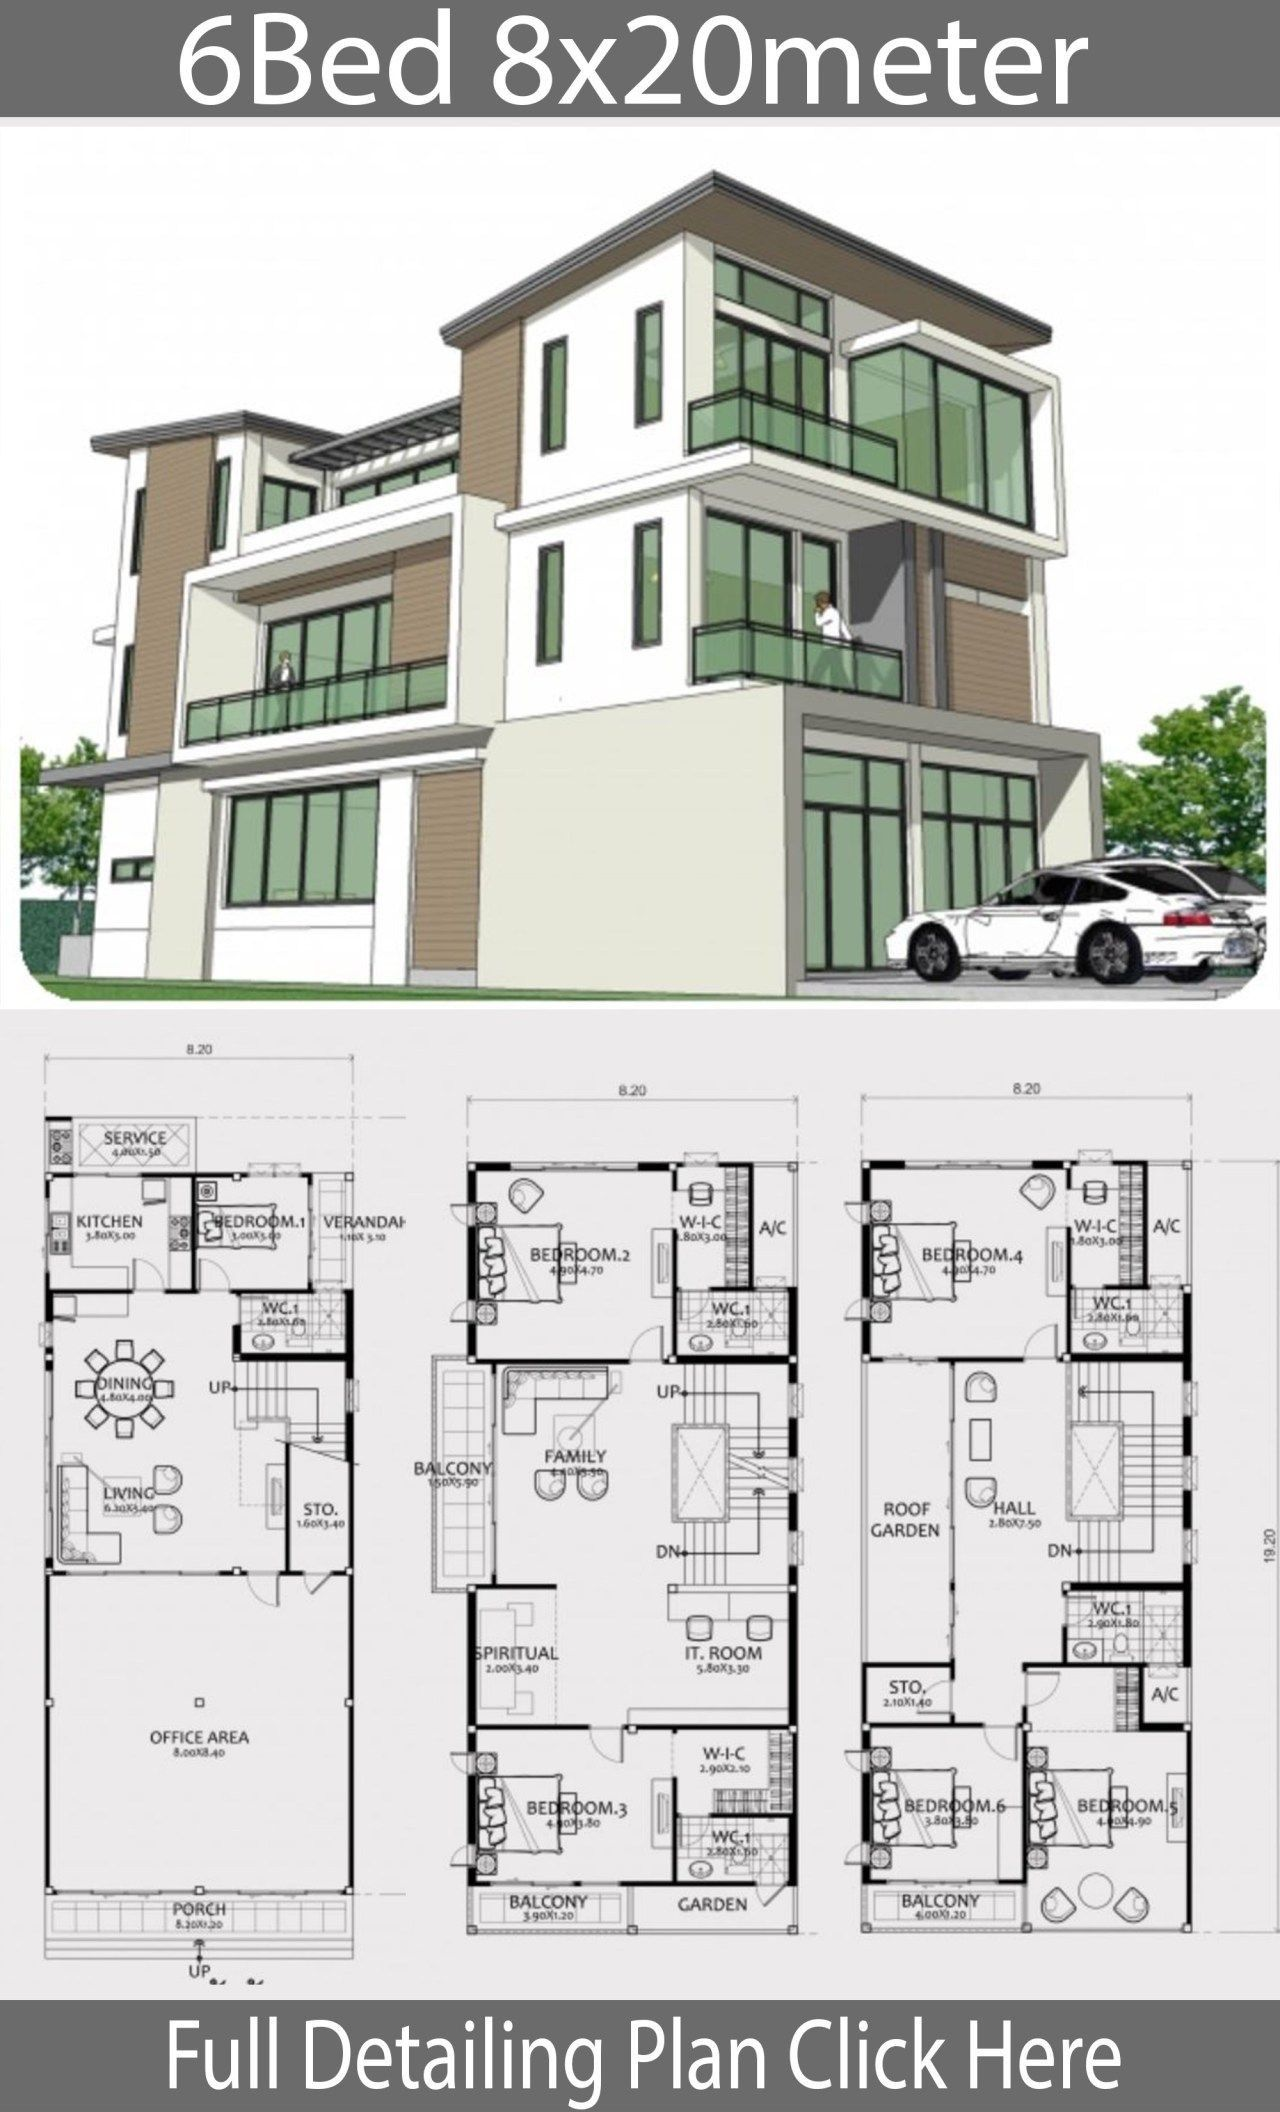 Home Design Plan 8x20m With 6 Bedrooms With Images Two Story House Design Modern House Floor Plans Modern House Plans